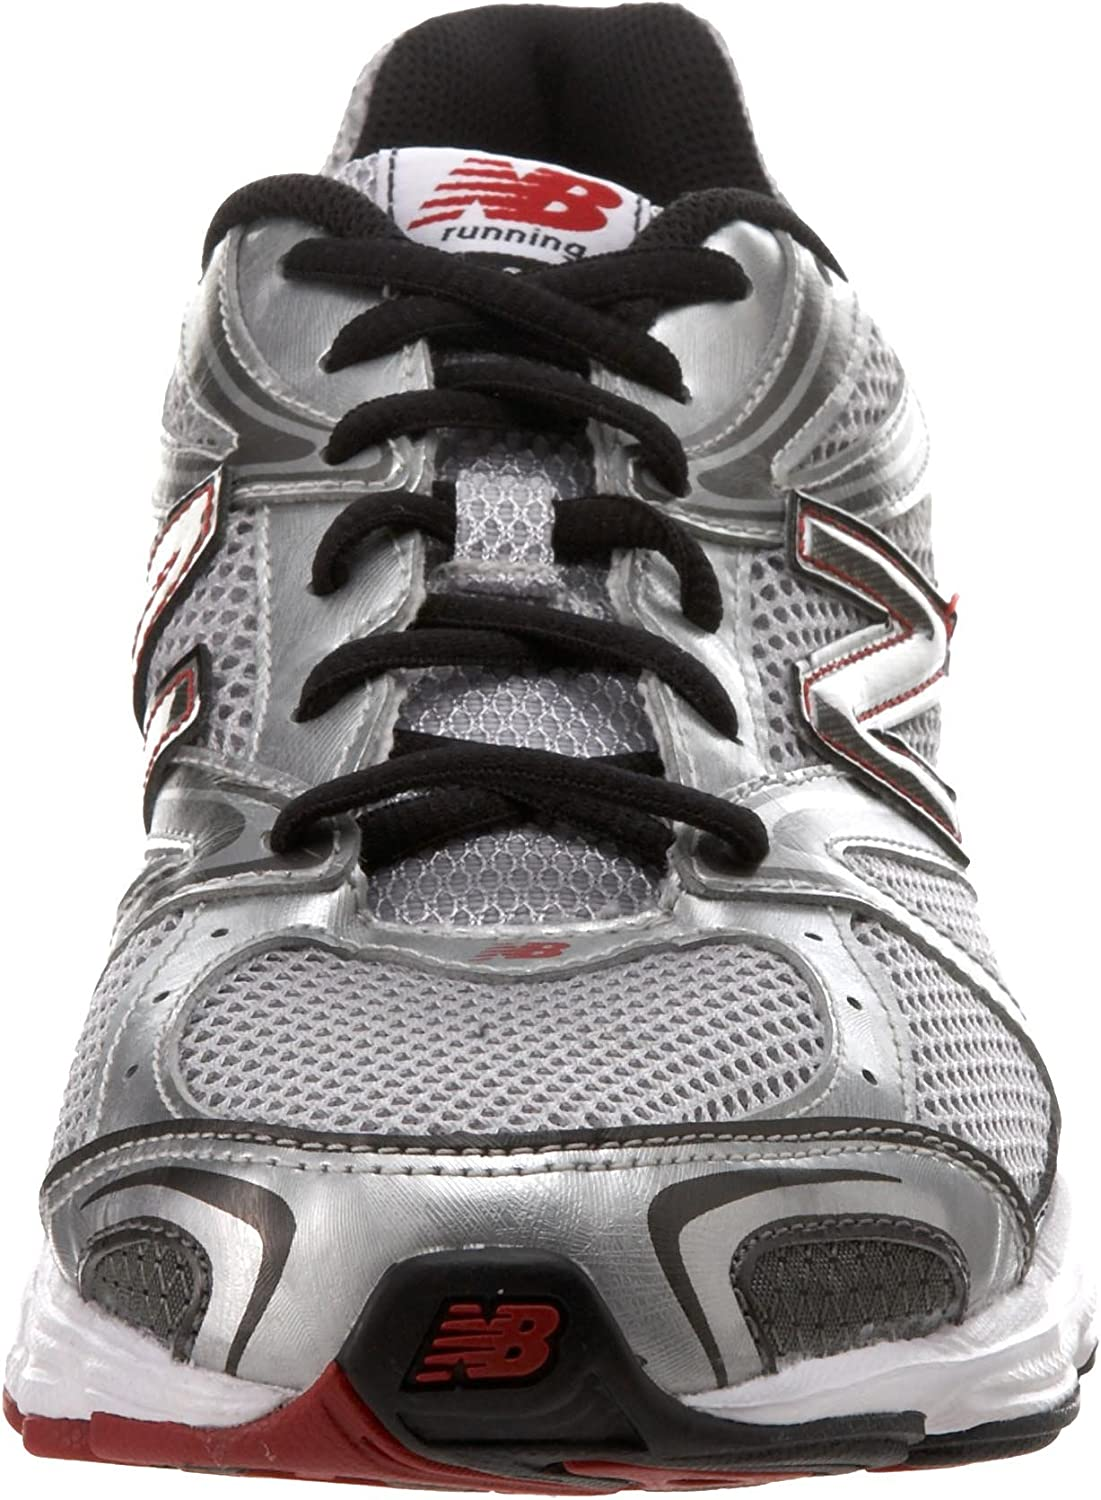 New Balance Men s MR580 Neutral Cushionined Running Shoe